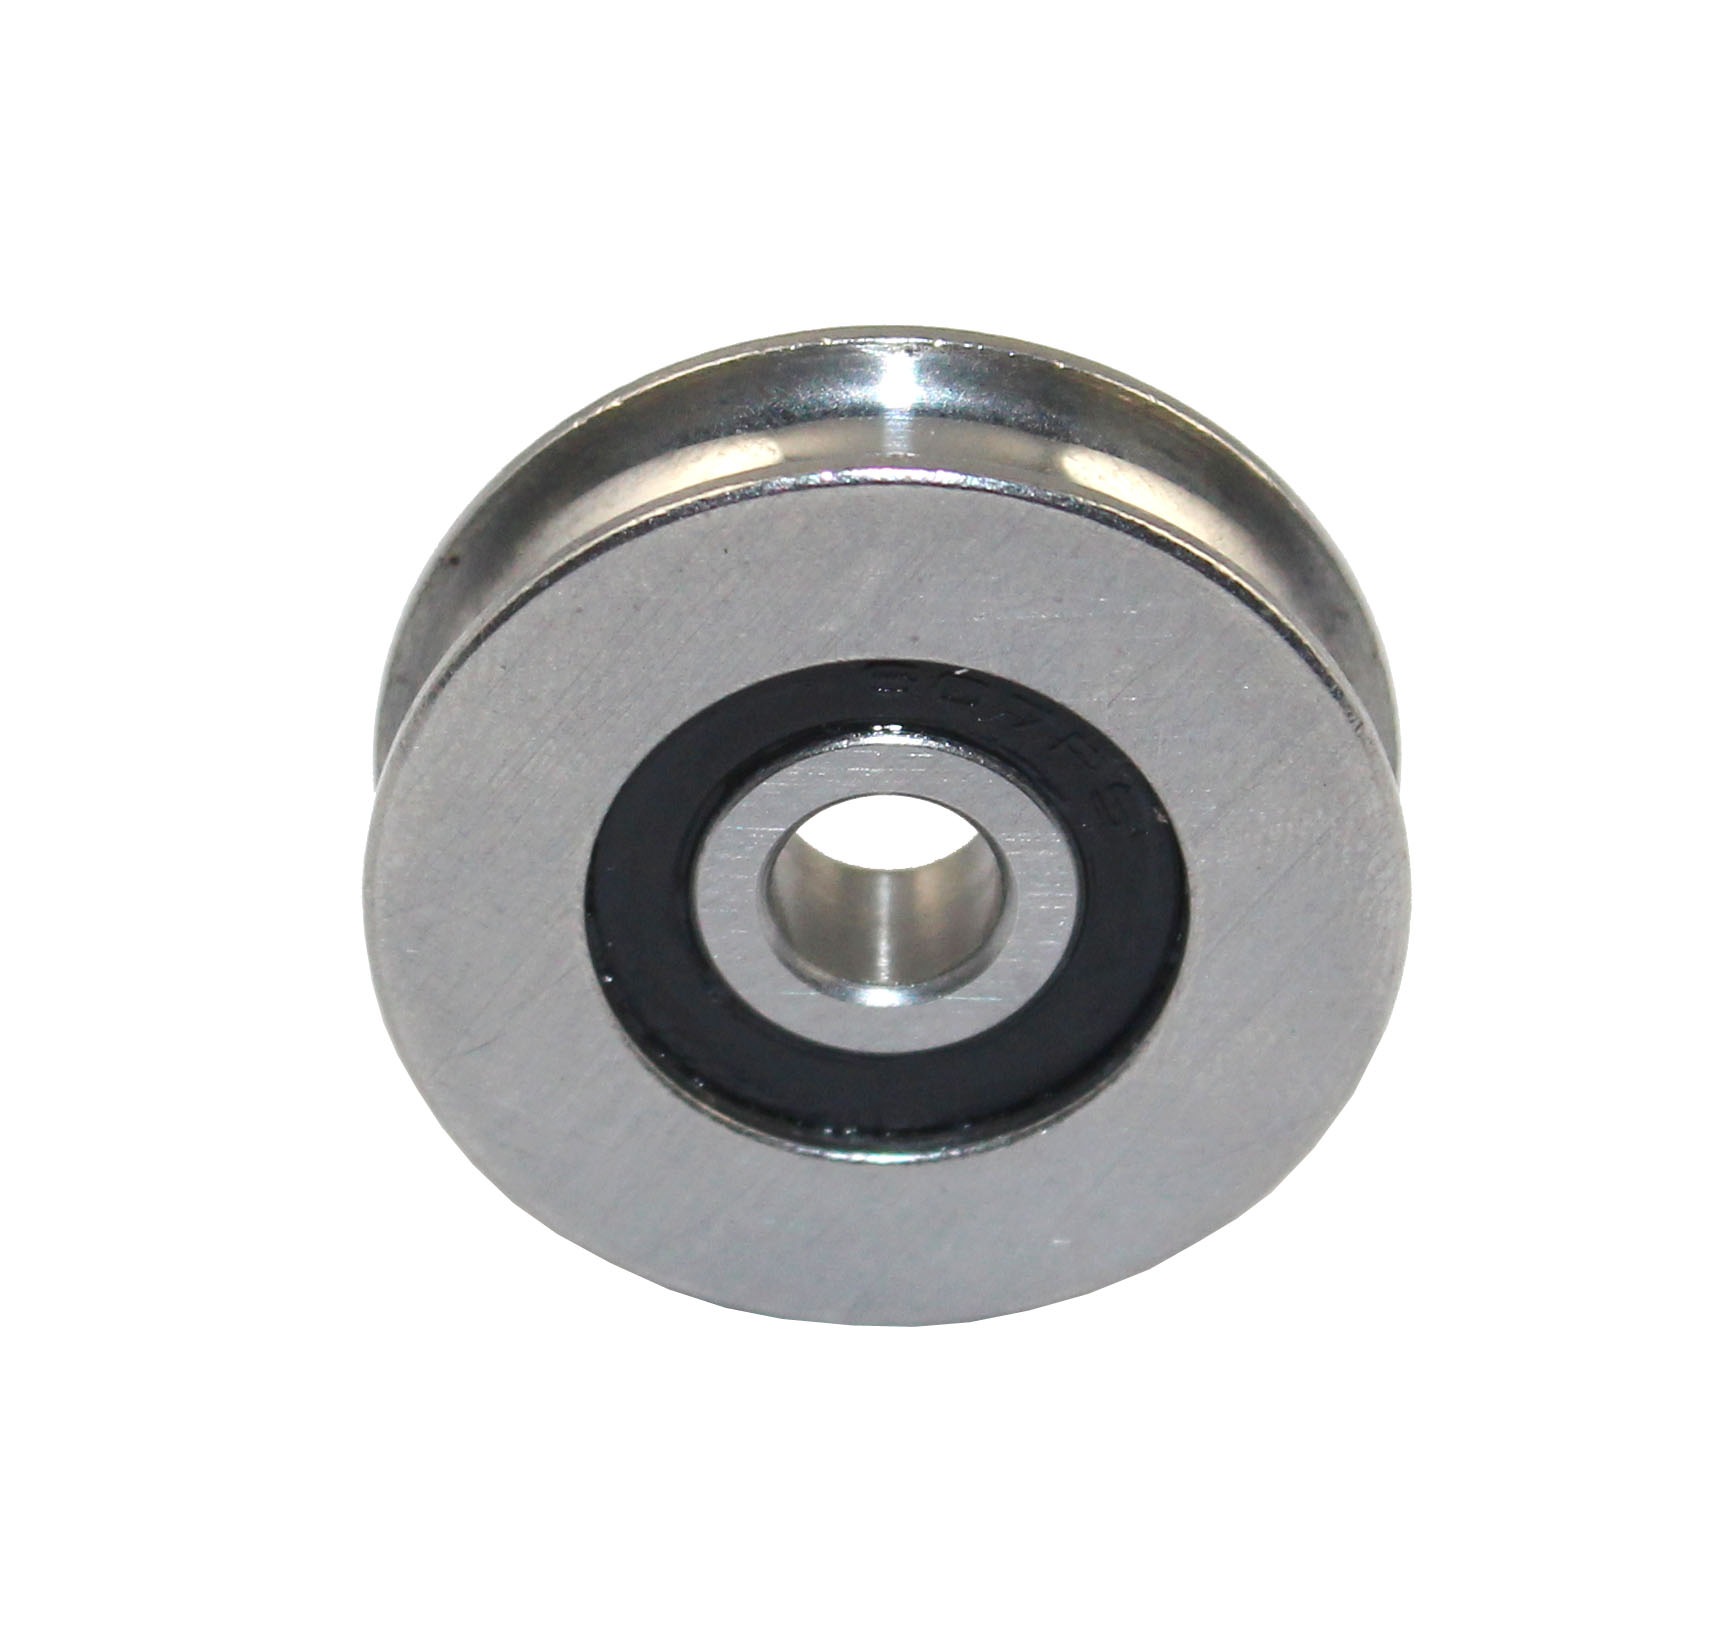 Newest Non Standard S625 2rs Stainless Steel Pulley Wheel